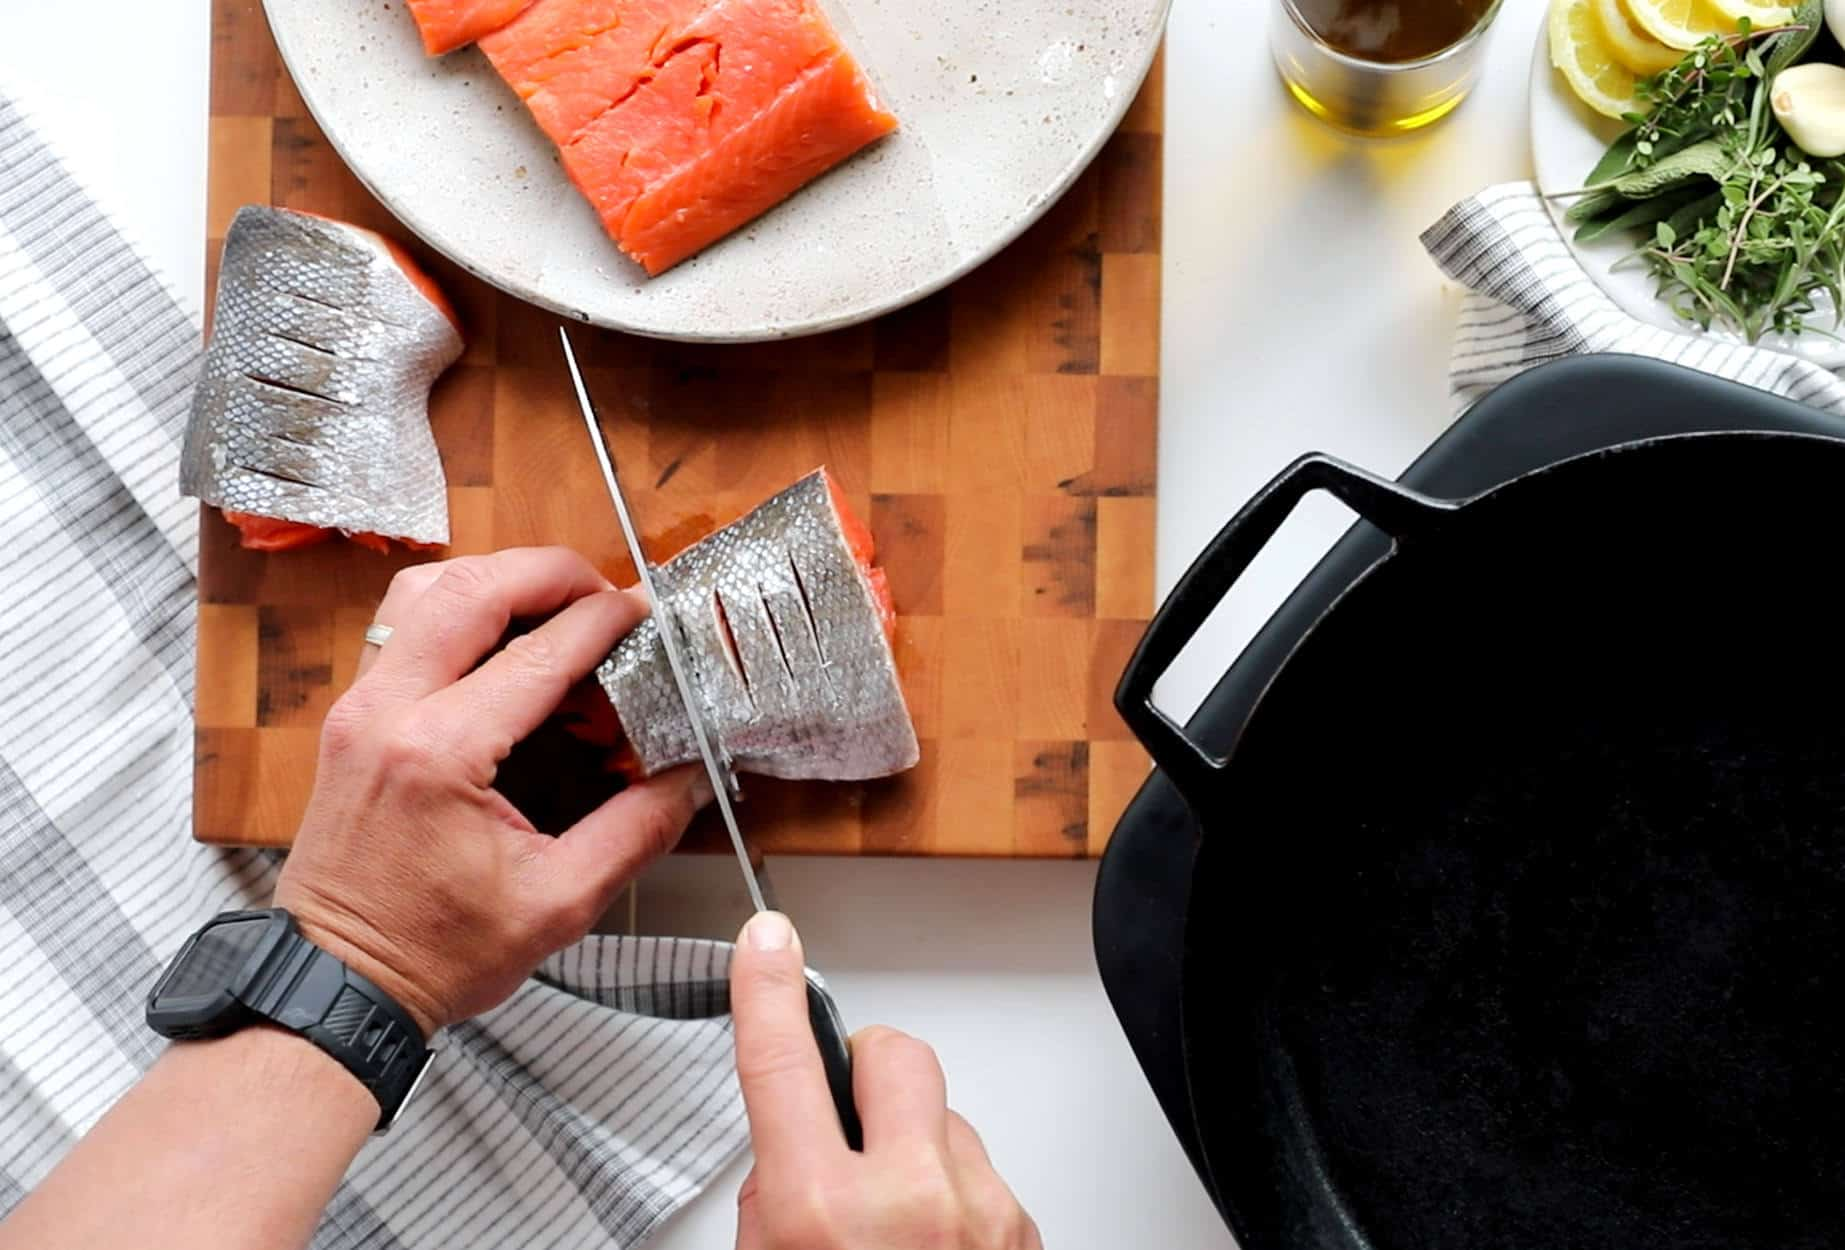 Brown Butter Herb Crispy Skin Salmon and Vegetables: Scoring salmon skin of a salmon filet with sharp knife prior to cooking.